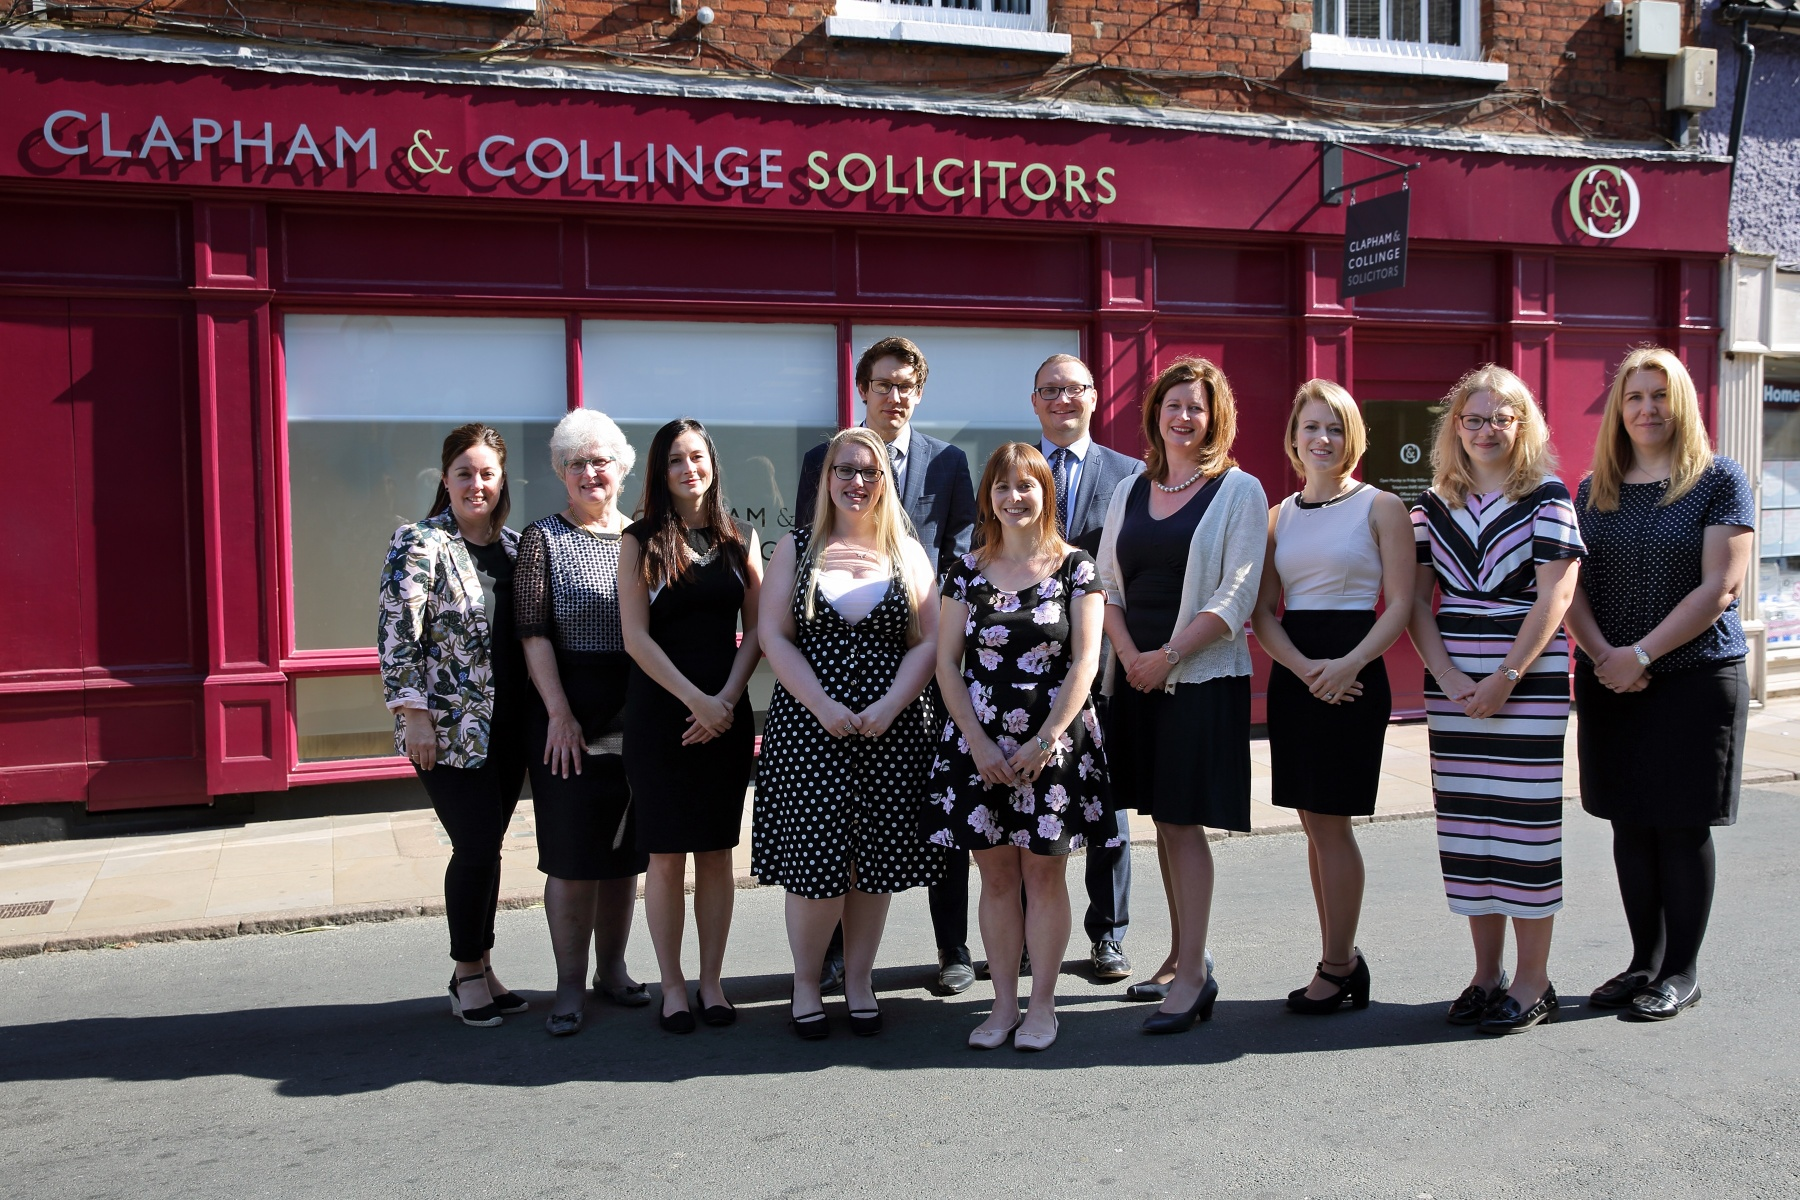 clapham-collinge-solicitors-north-walsham-office-staff